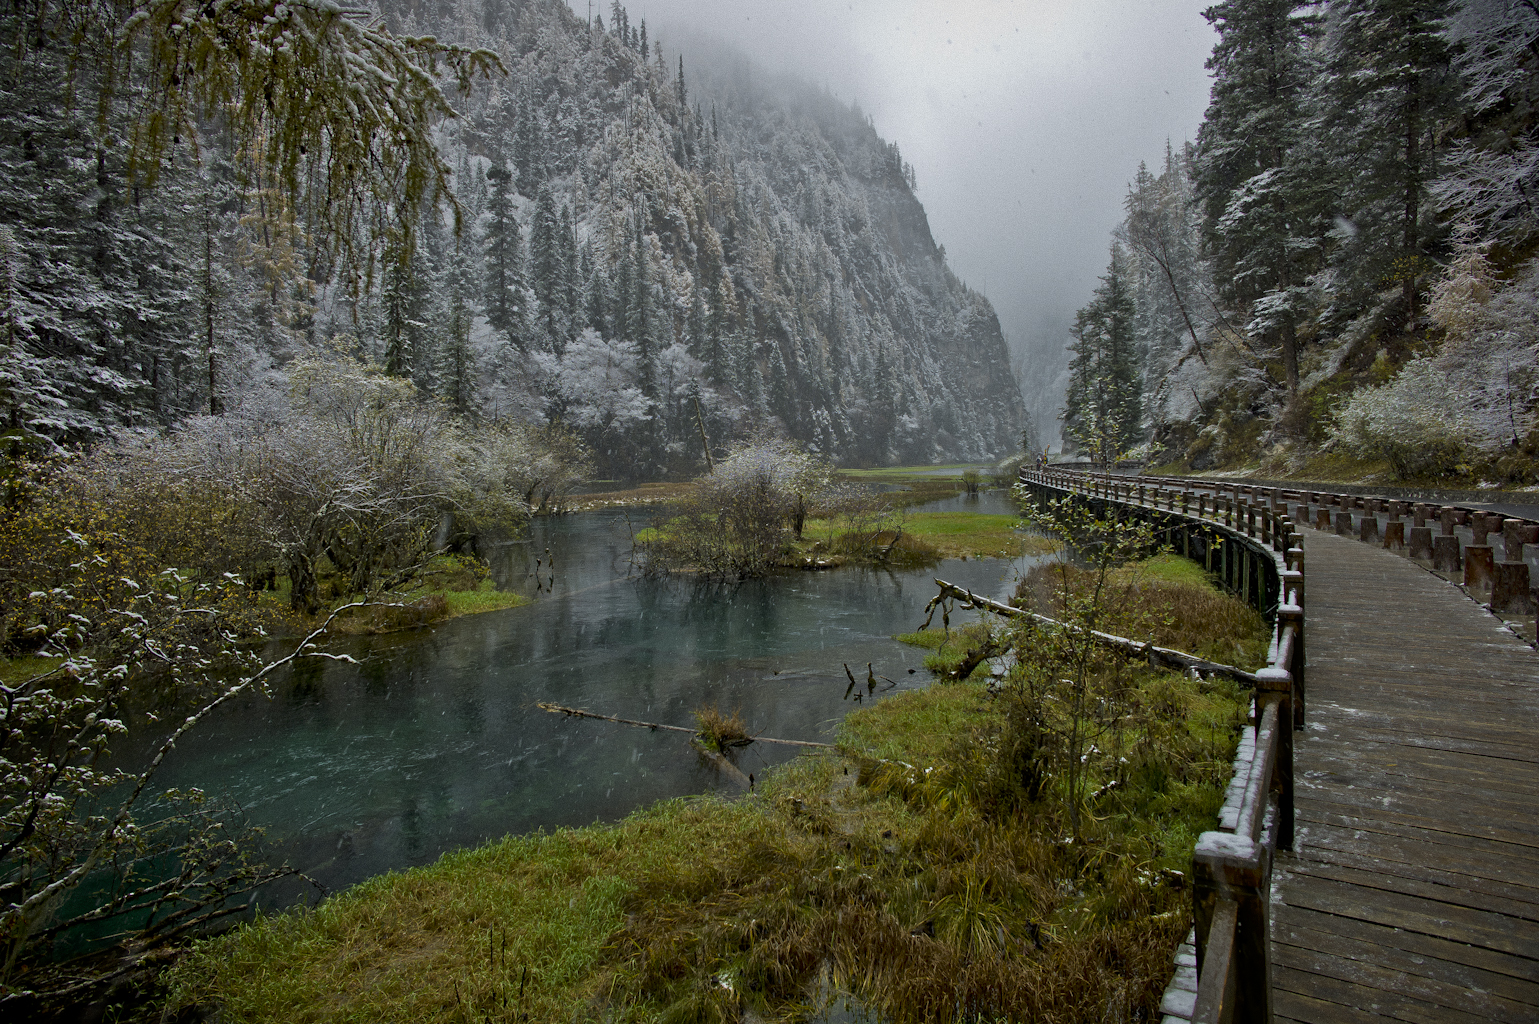 Snowy range English: A snowy road through a mountain pass ... Snowy river winter beauty